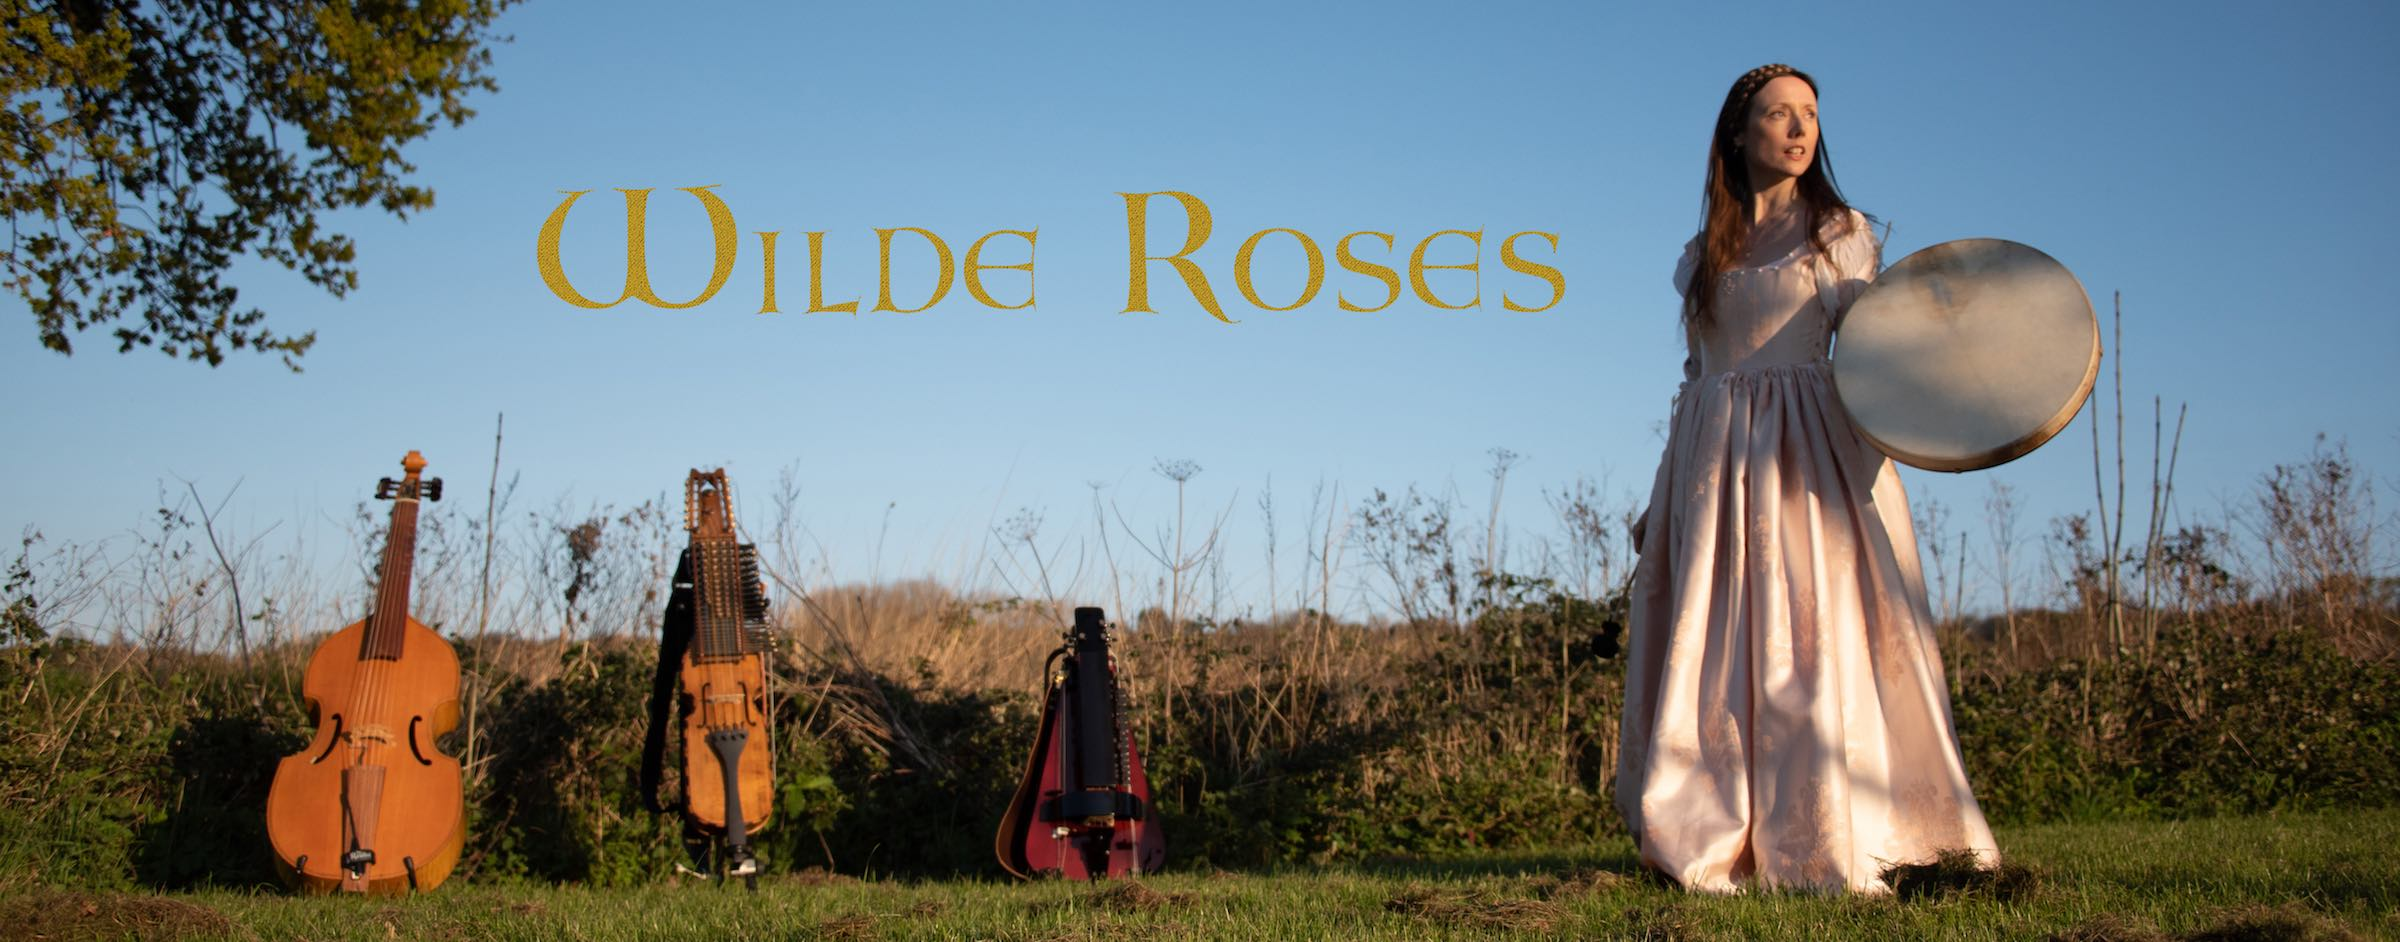 Wilde Roses with instruments